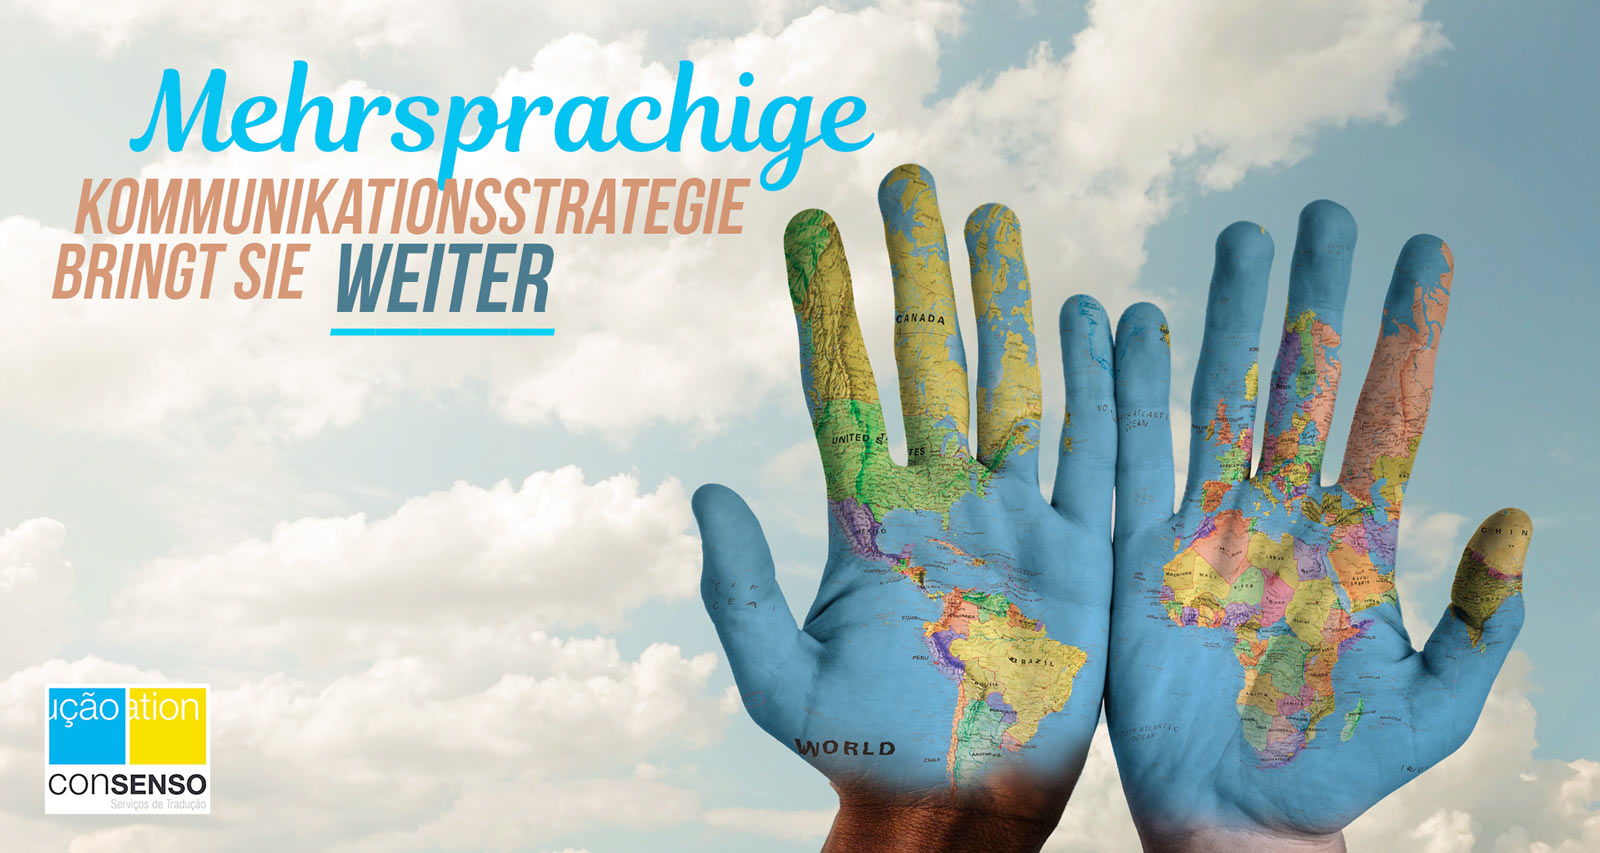 Mehrsprachige Kommunikations-strategie